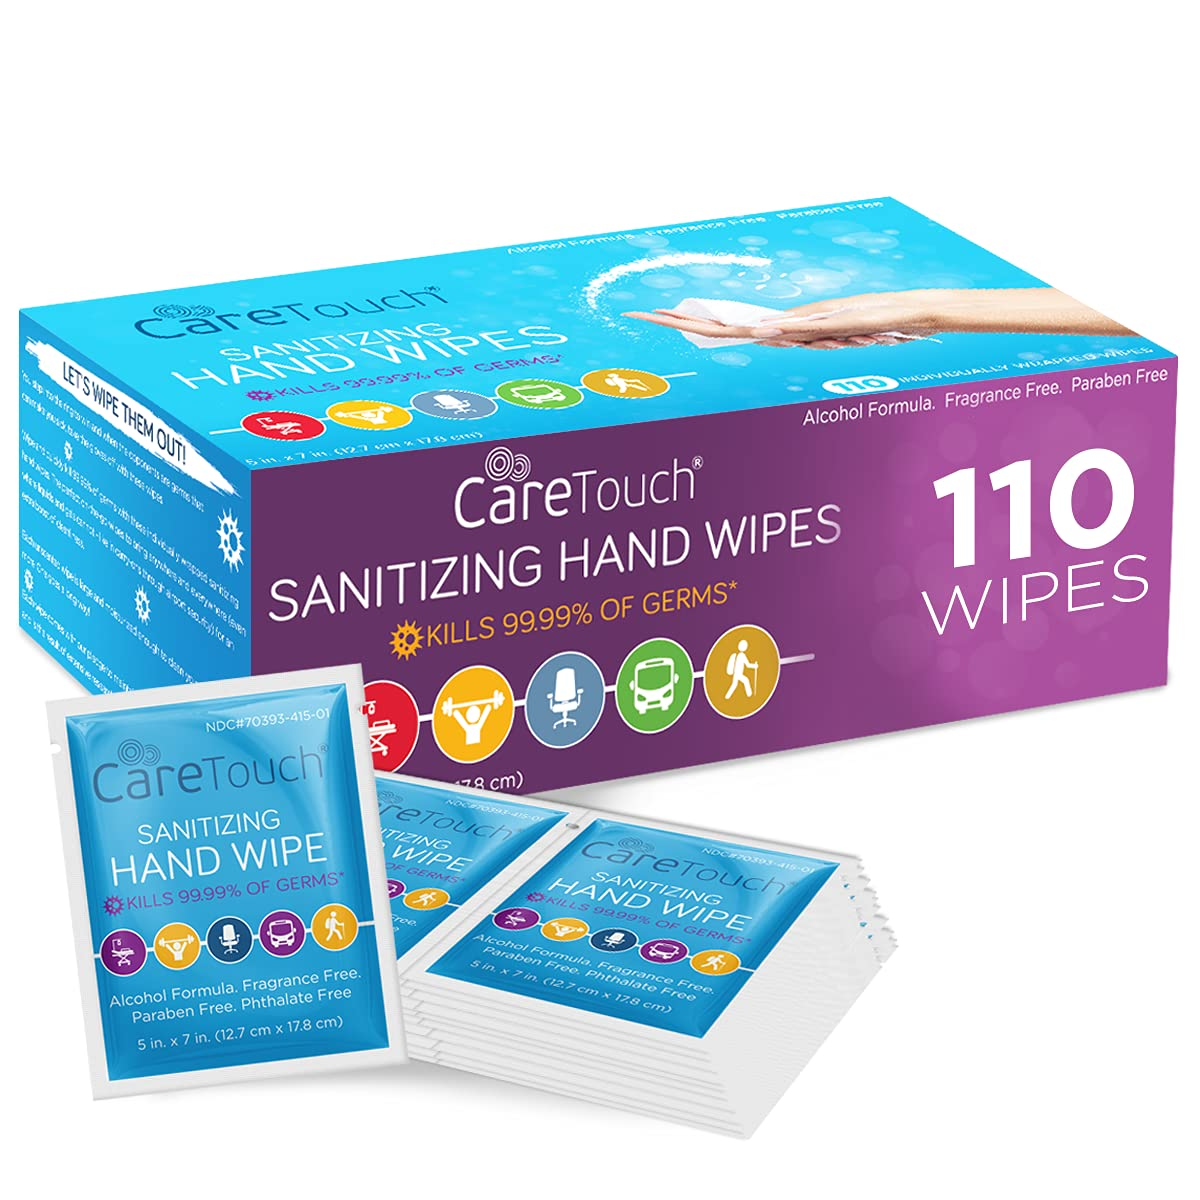 Care Touch Hand Japan Maker New Sanitizing 35% OFF Wipes Individually 110 - Wrapped Scen